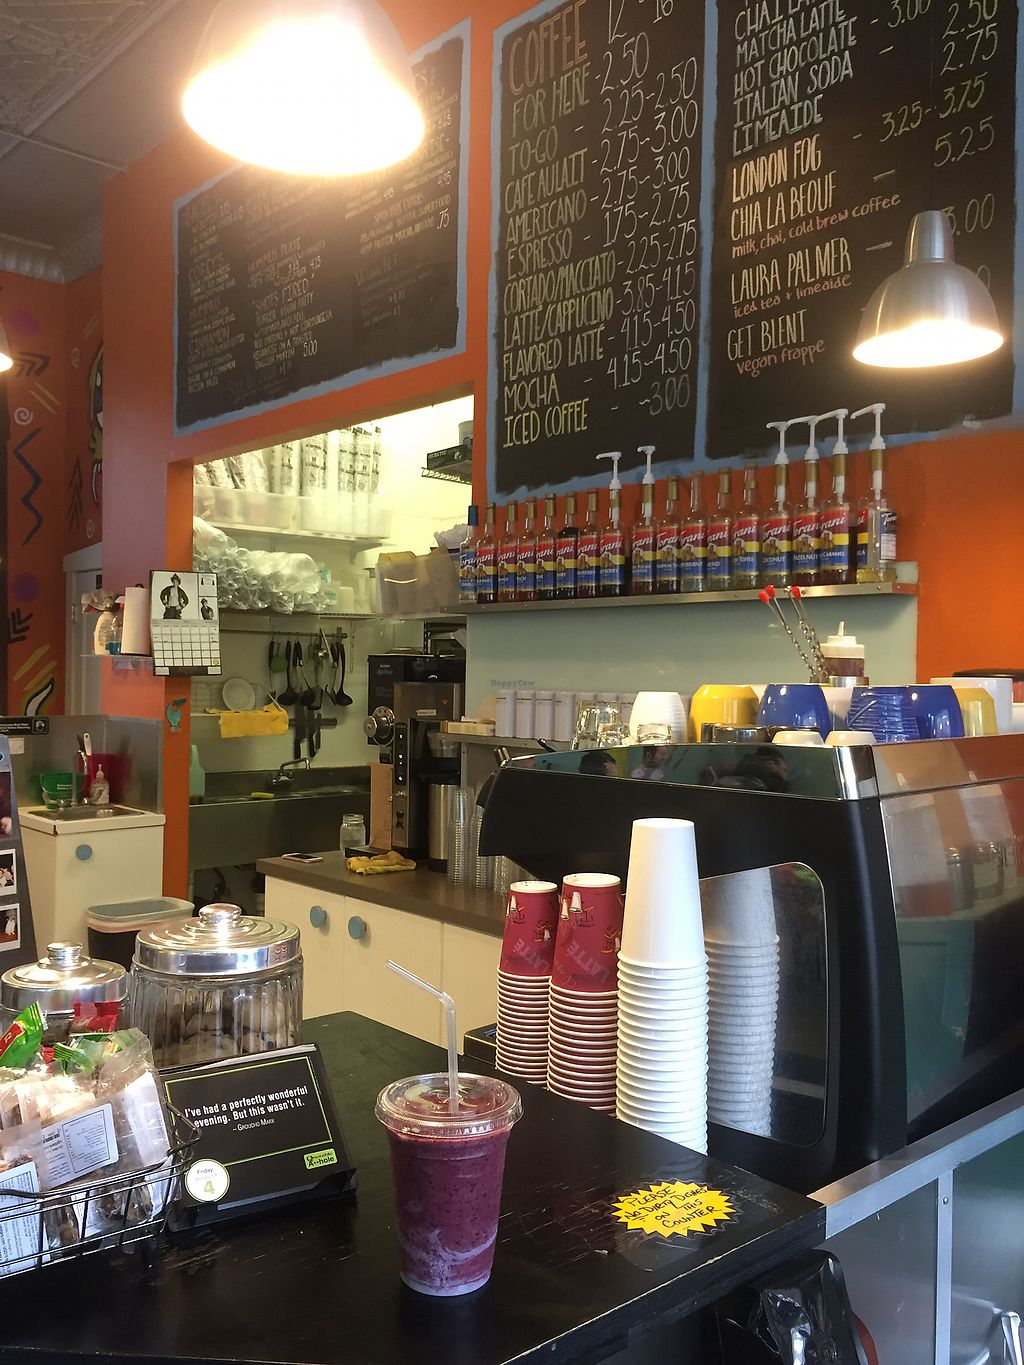 """Photo of Delicious Cafe  by <a href=""""/members/profile/happycowgirl"""">happycowgirl</a> <br/>purple cow smoothie is great!  <br/> August 4, 2017  - <a href='/contact/abuse/image/17202/288746'>Report</a>"""